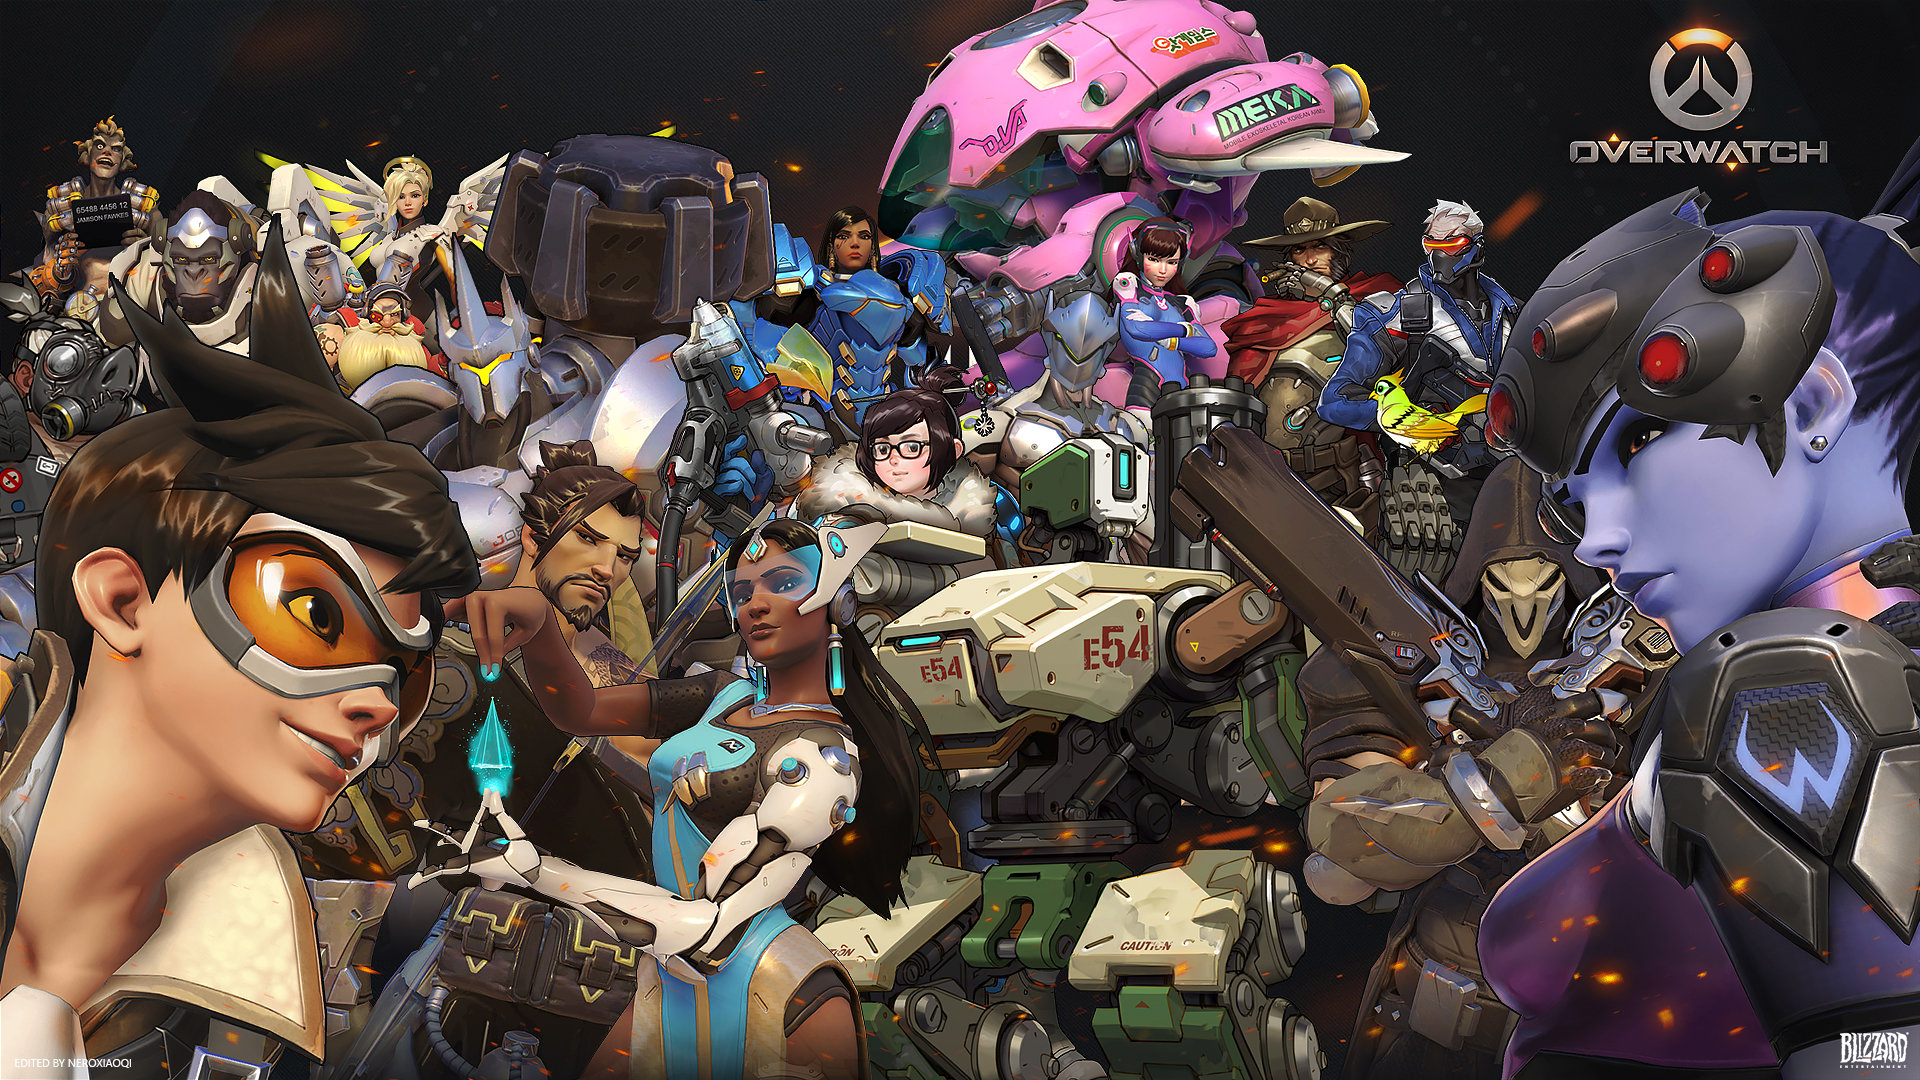 Overwatch Characters Wallpaper 1080p 2267402 Hd